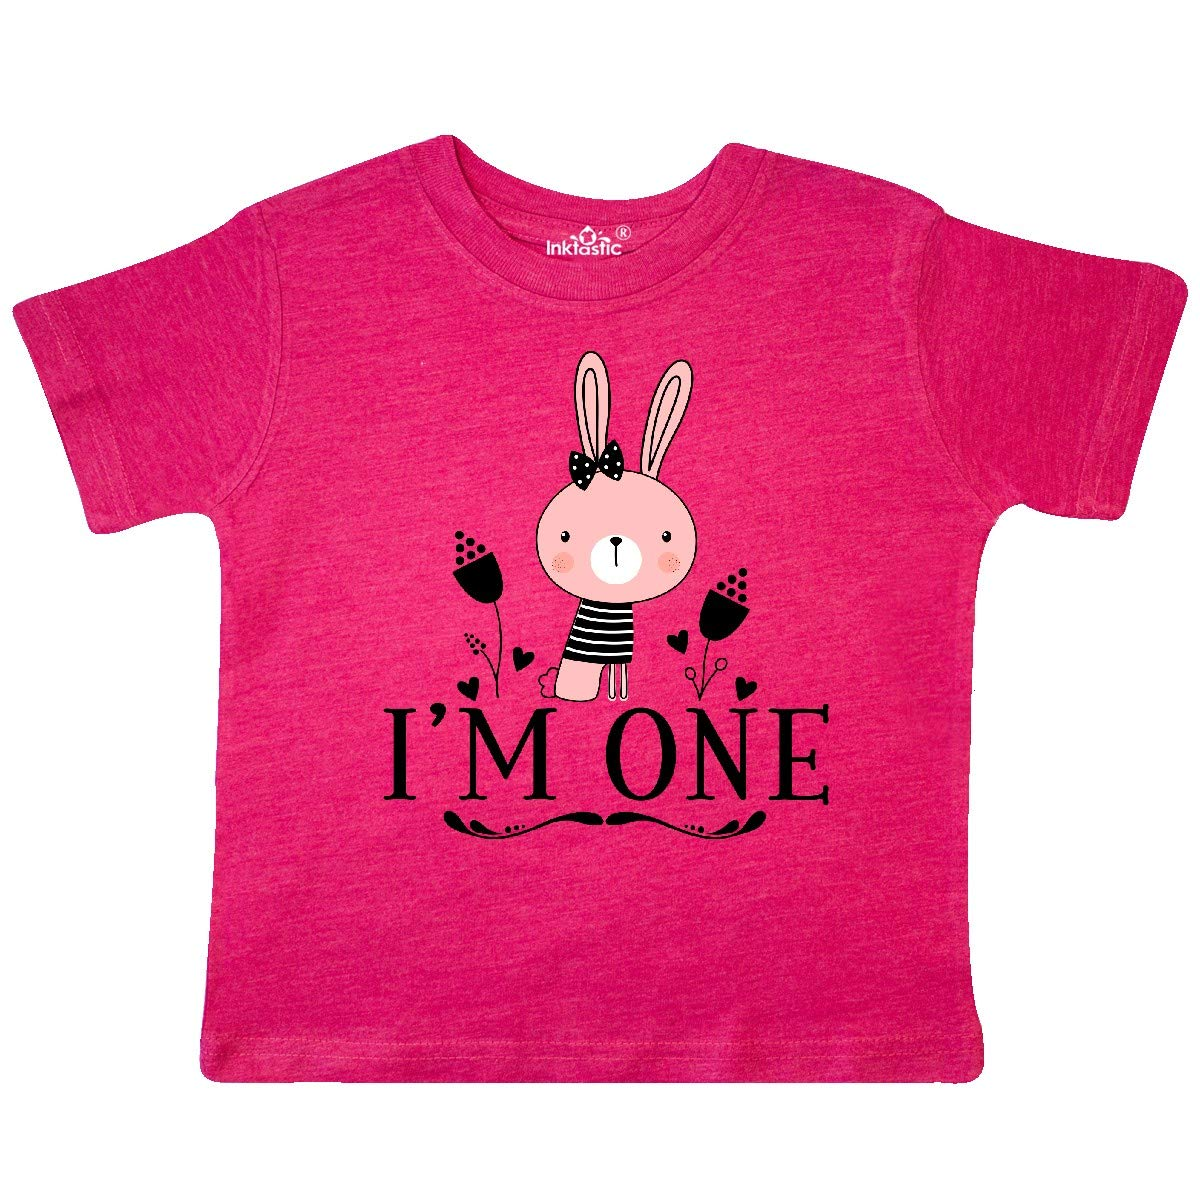 inktastic 1st Birthday Outfit Gift Girl Bunny Toddler T-Shirt